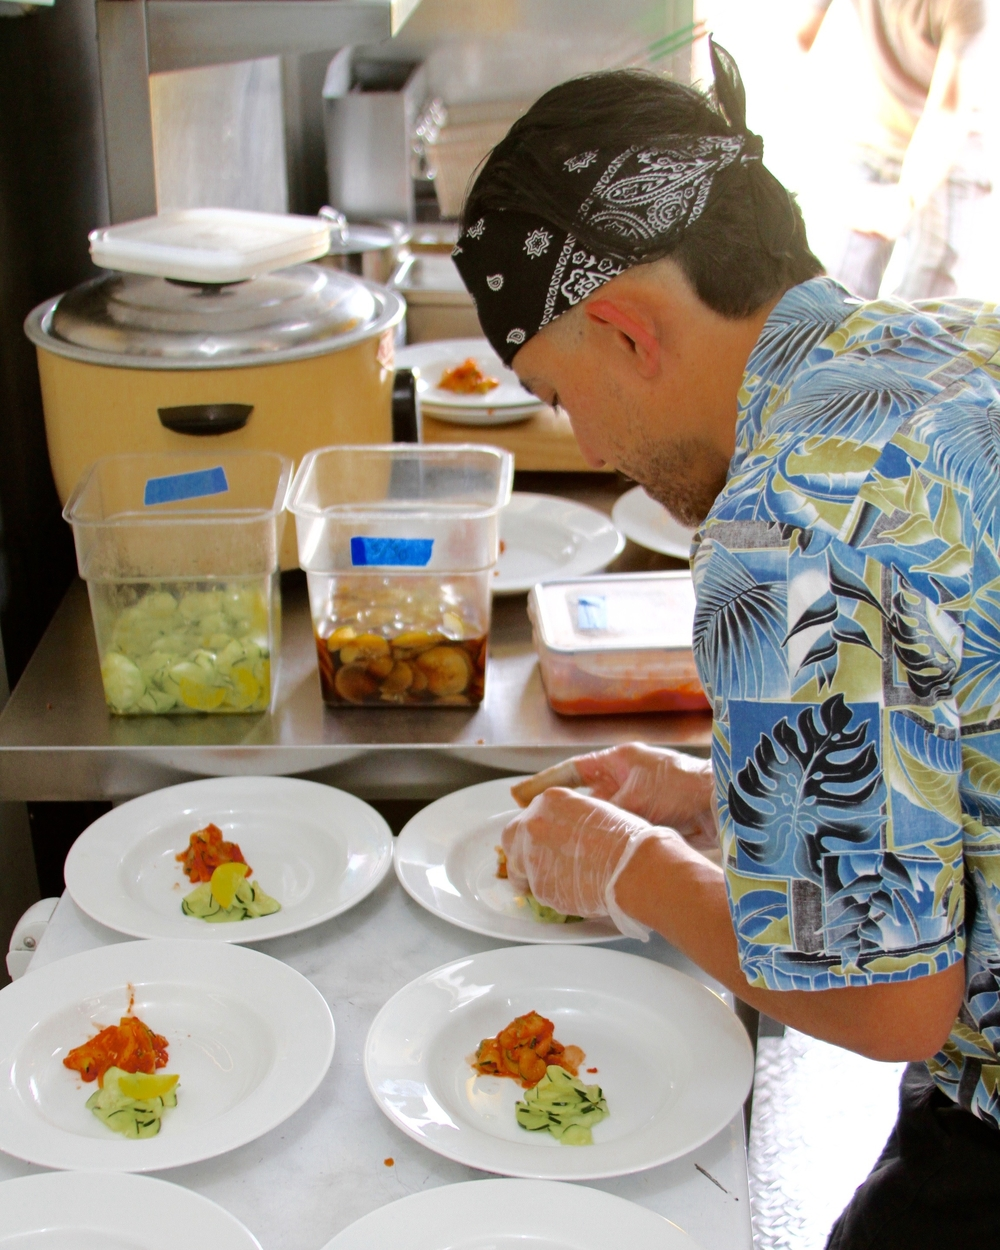 Portioning the cucumber salads